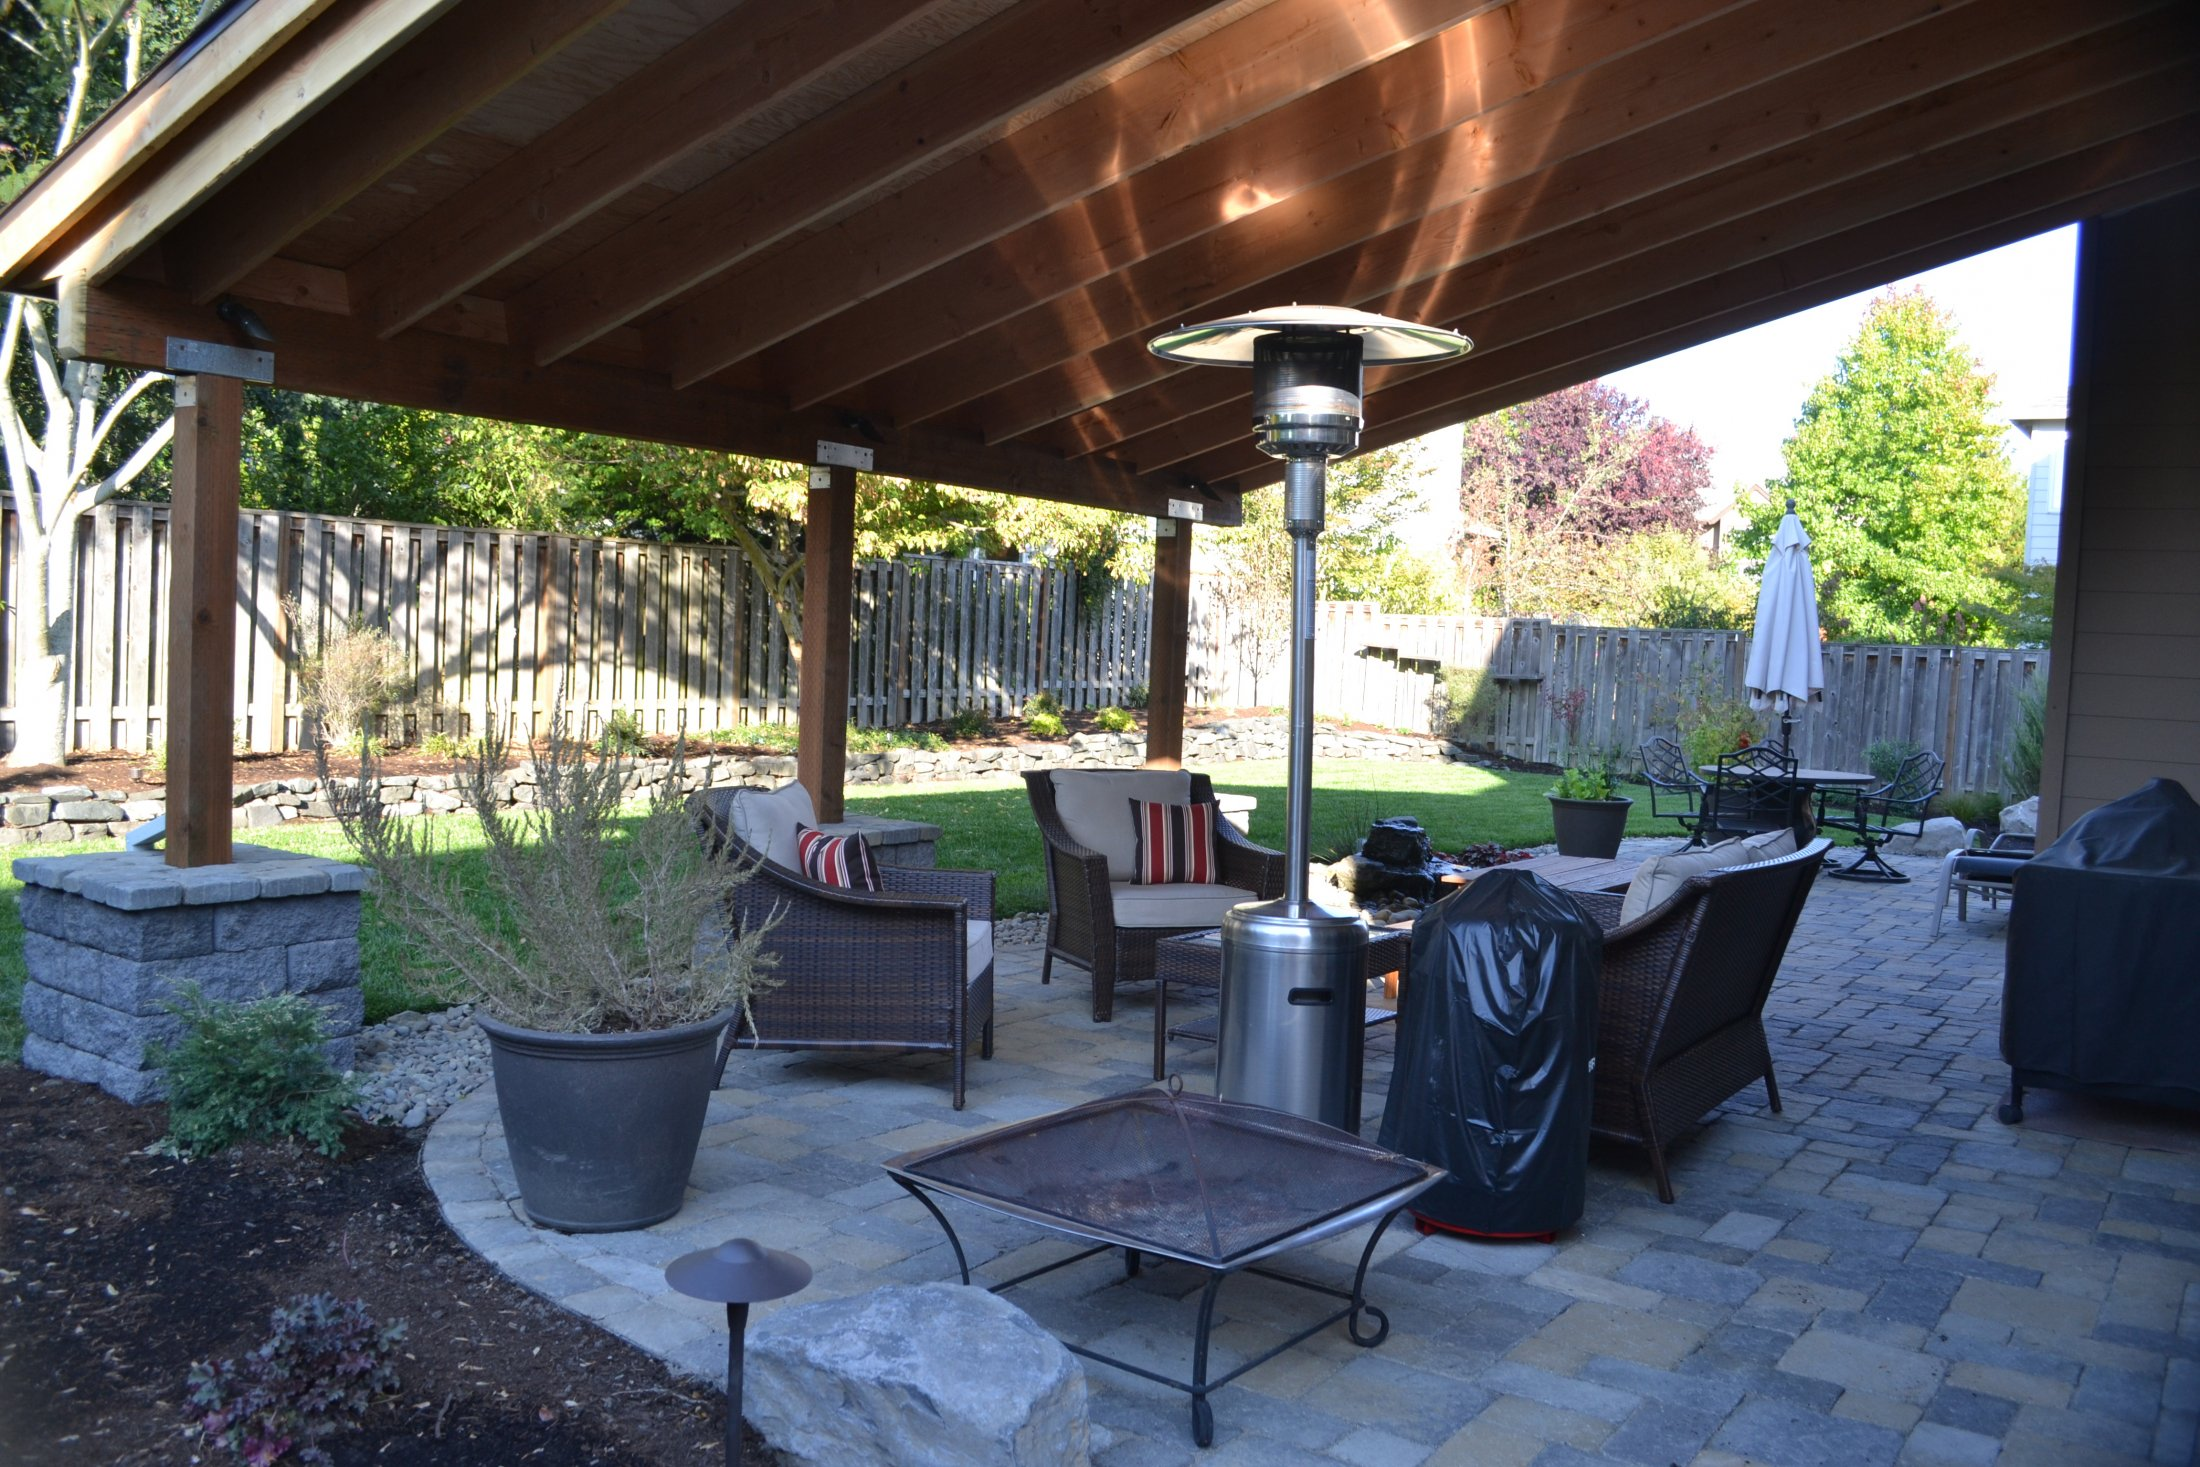 Paver Patio with Covered Structure Above